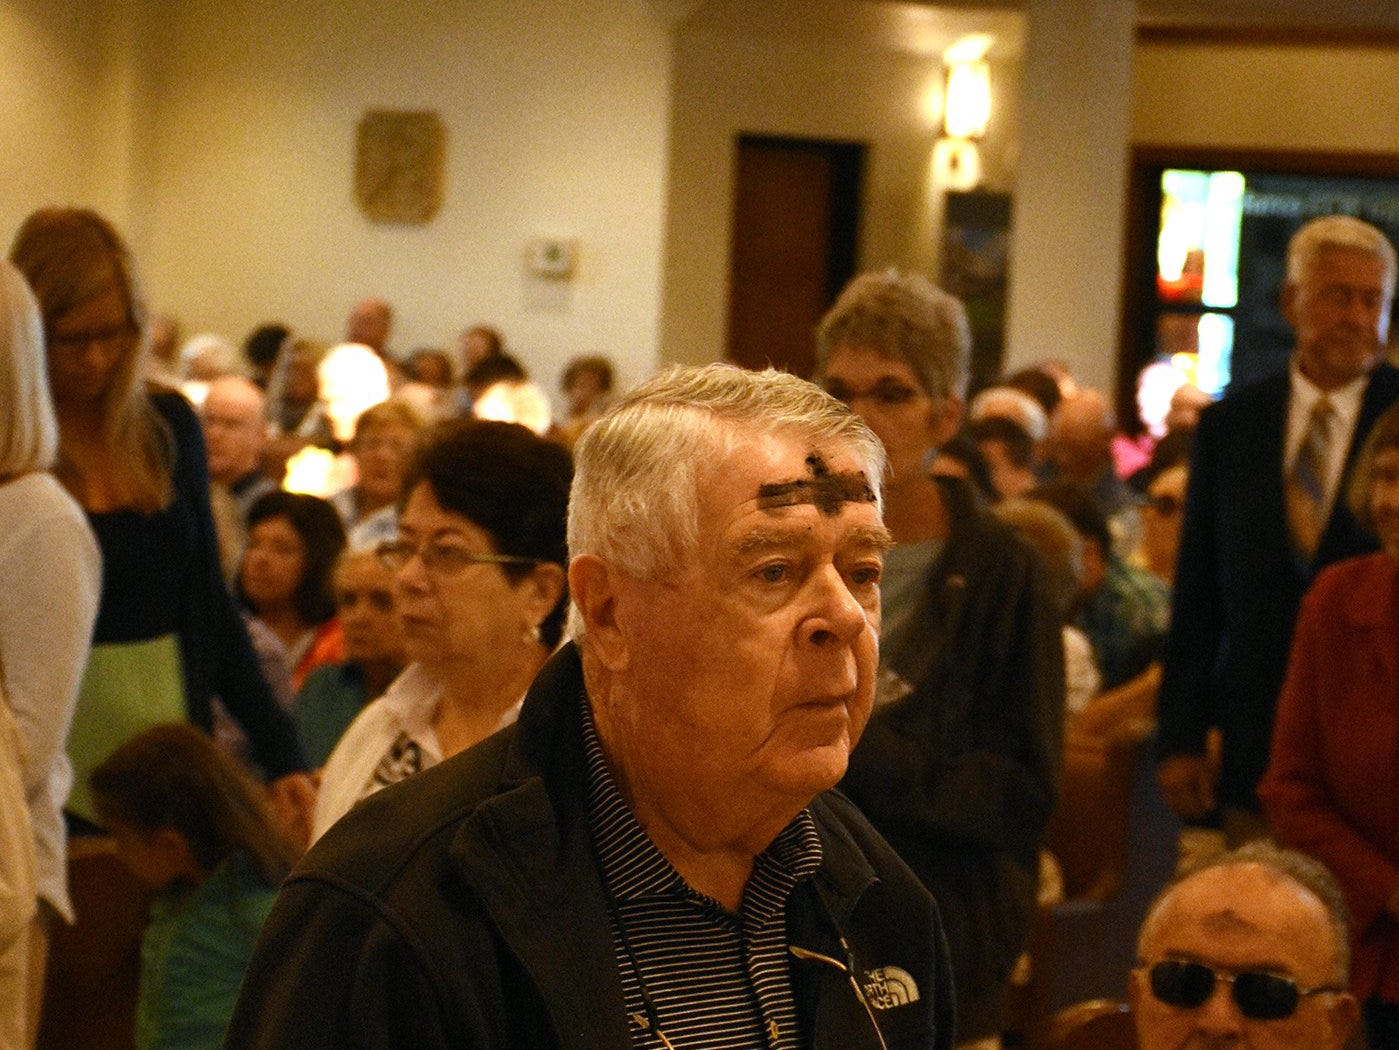 Catholics on Marco Island and around the world, along with many other Christians, celebrated Ash Wednesday by attending mass and having a cross drawn on their foreheads in ashes.